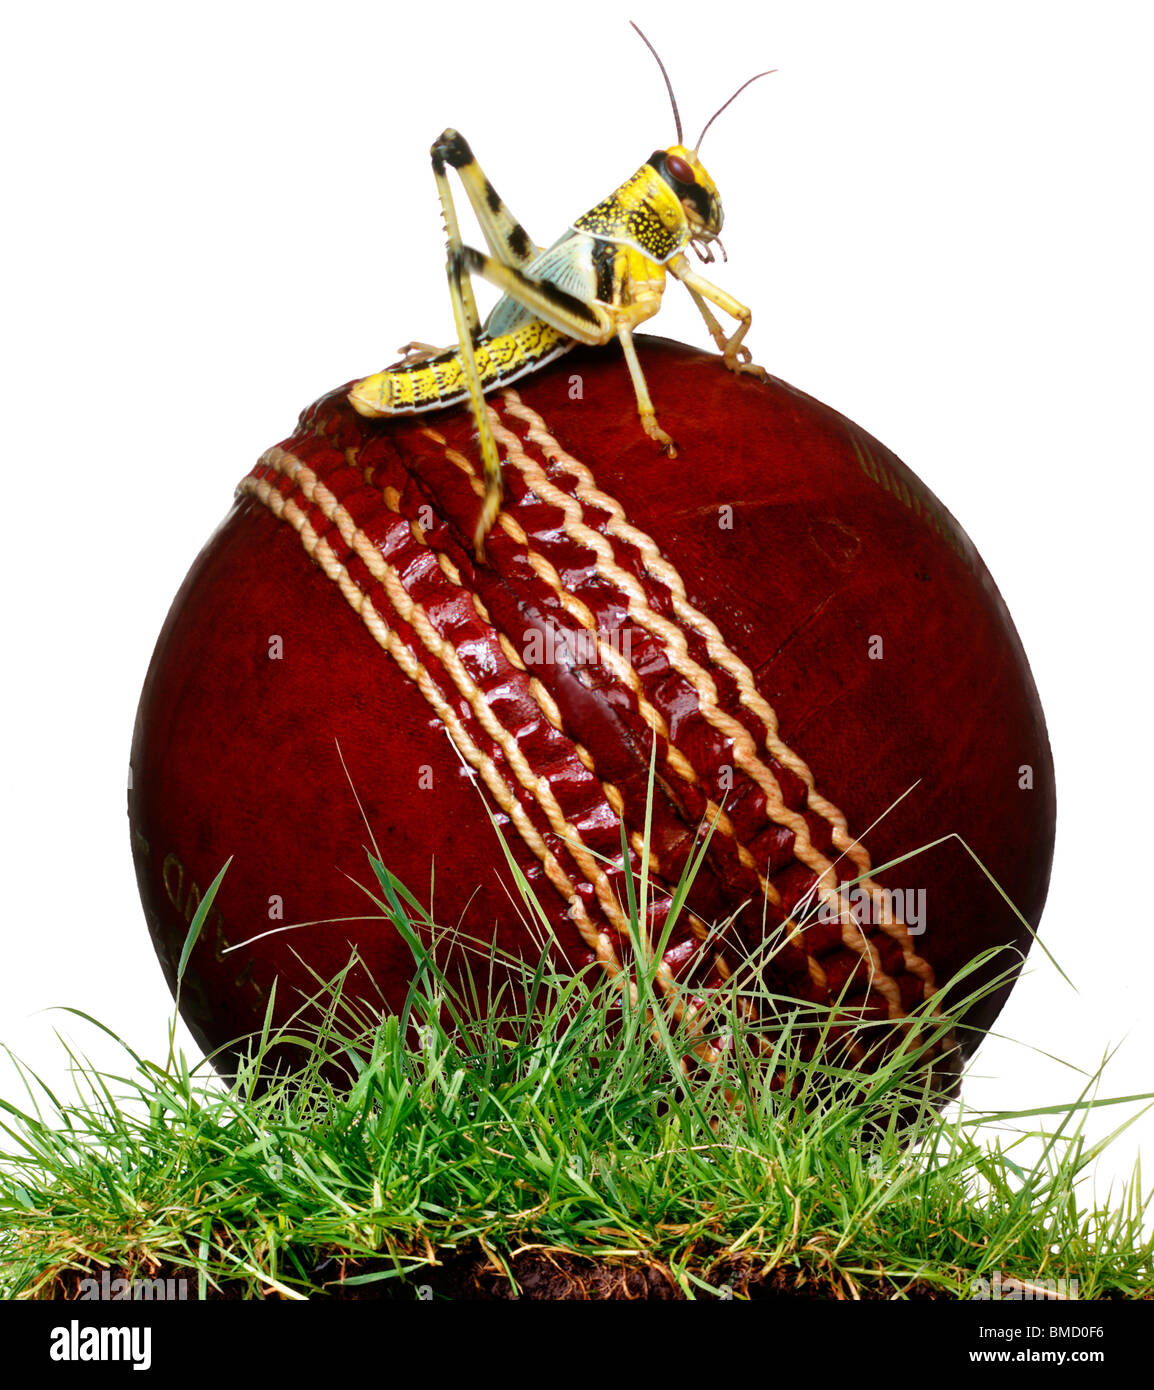 Cricketball Stockbild